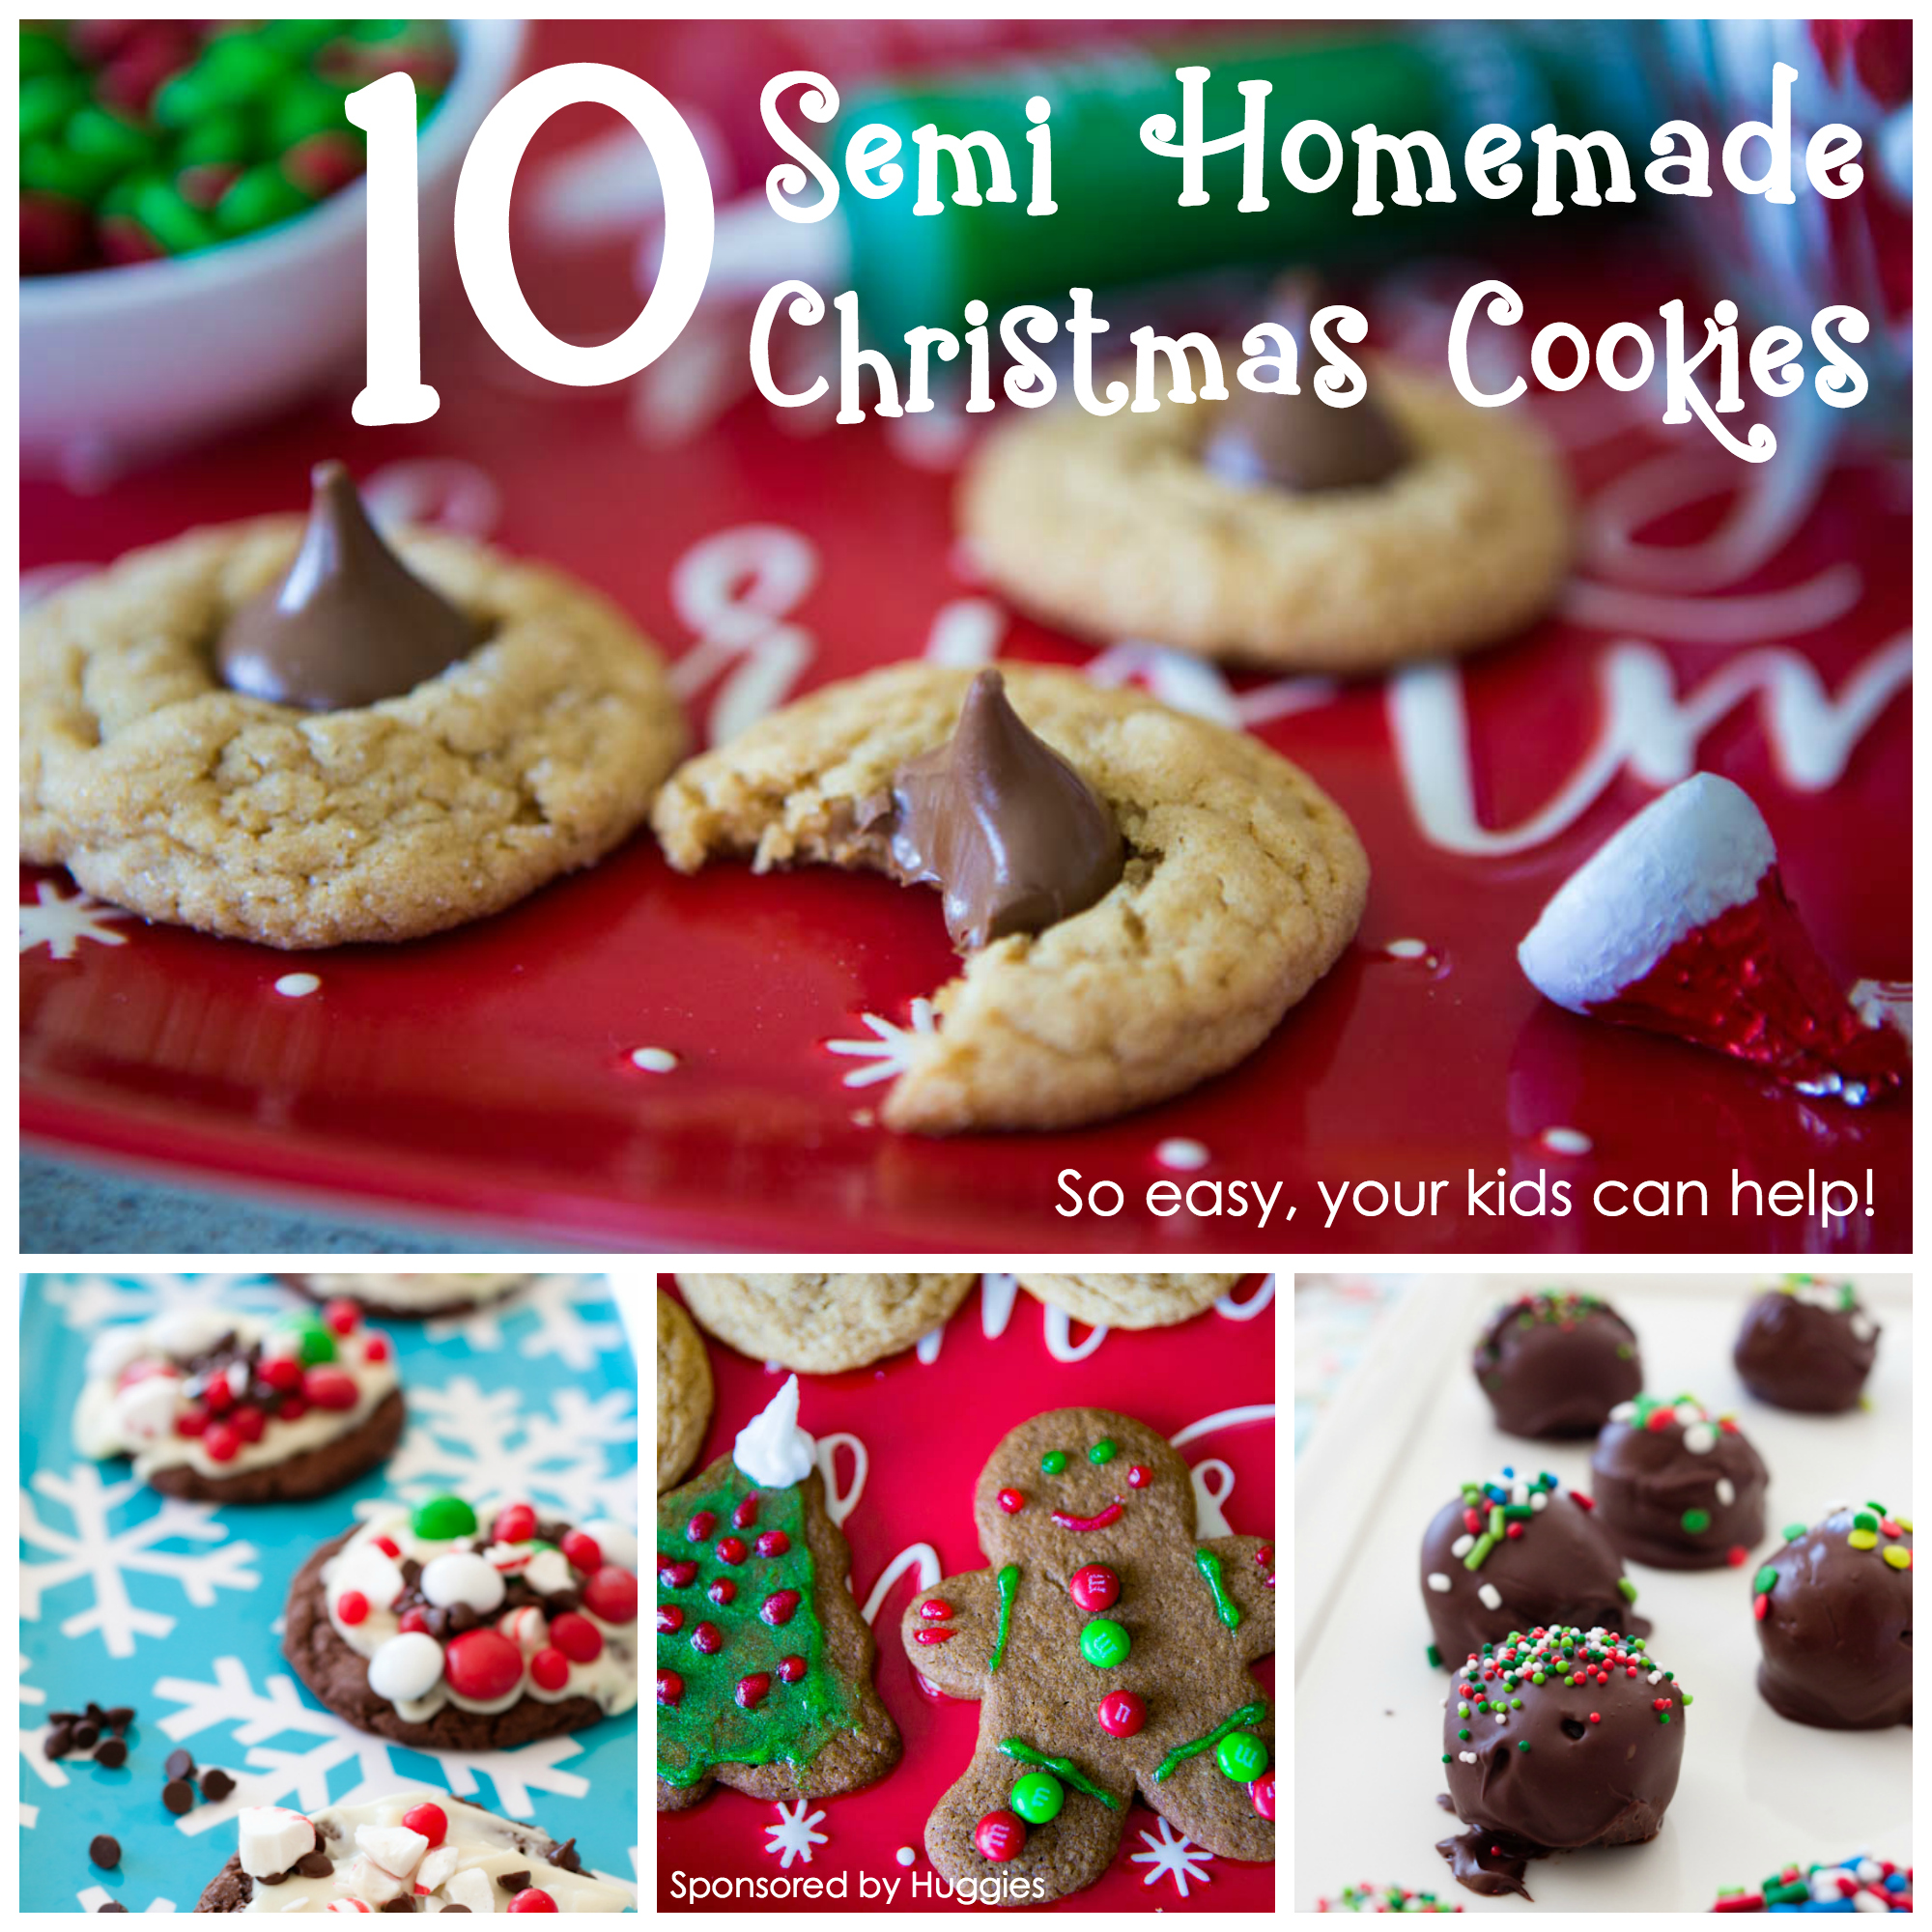 10 semi homemade christmas cookies so easy your kids can make - Simple Christmas Cookies